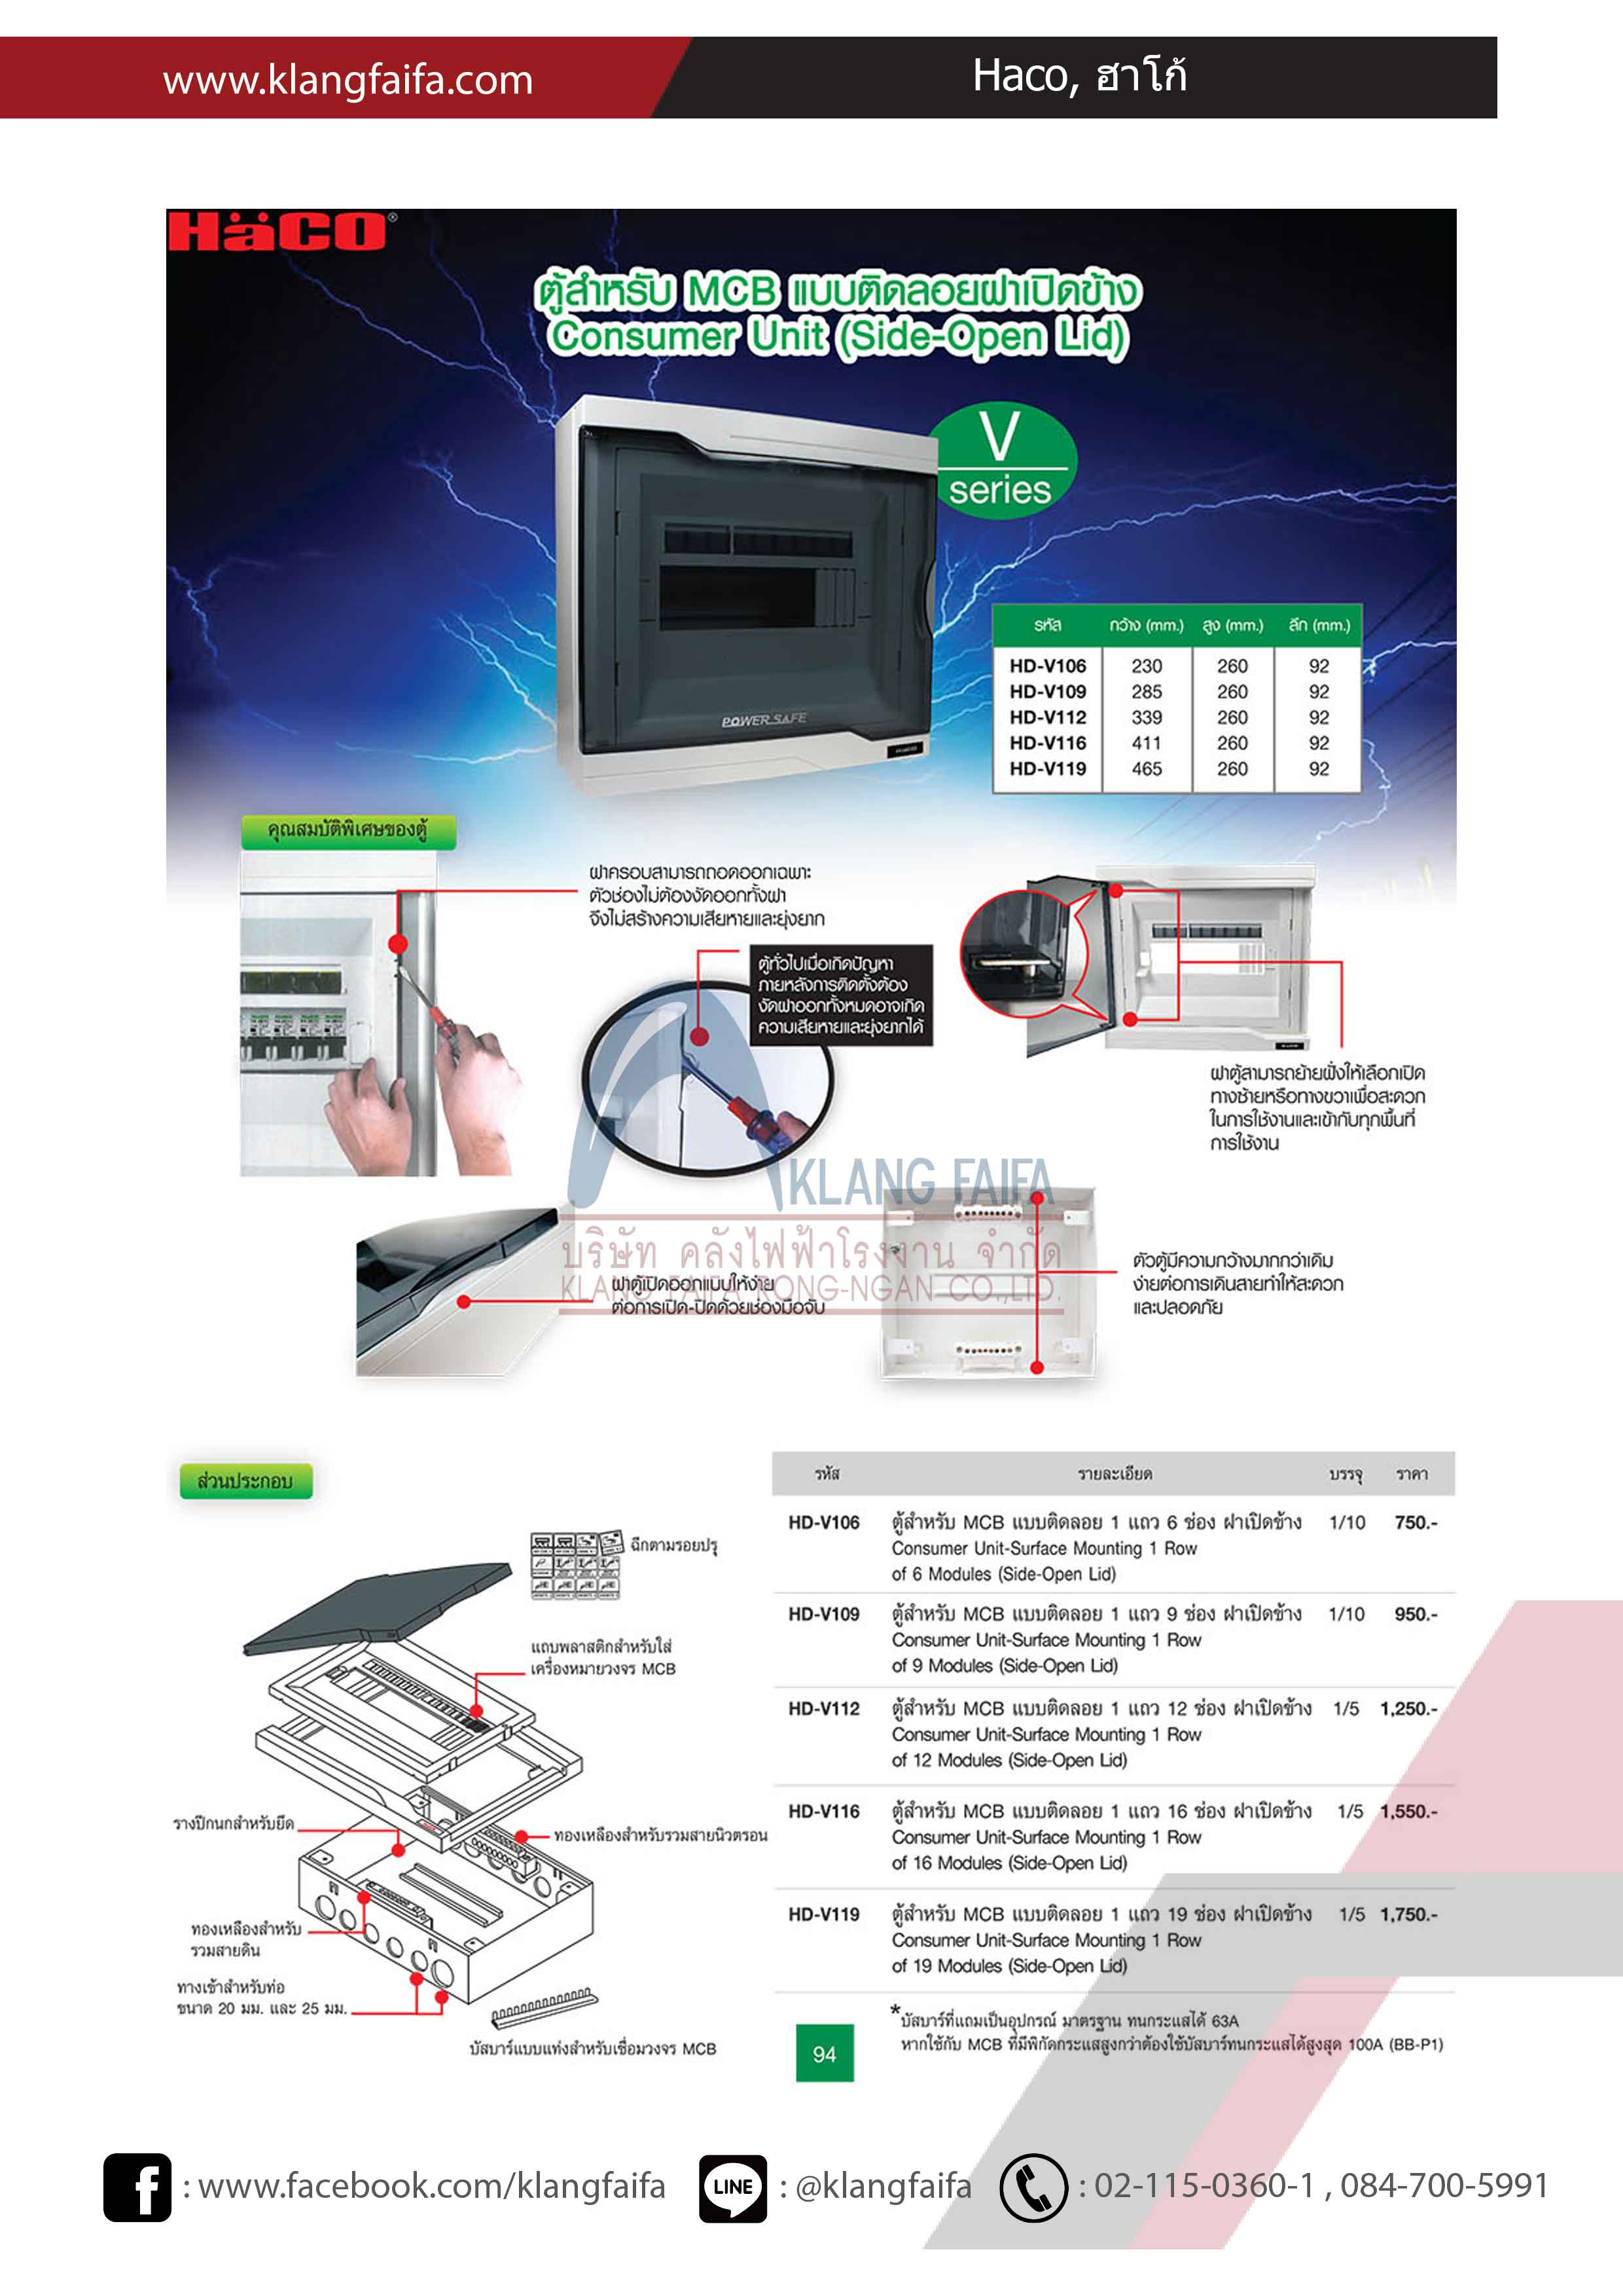 Haco, ฮาโก้, Power Safe, MCB, RCDs, MCCB, RCBO, Surge Protection amd Consumer Unit, Catalog2018-2019